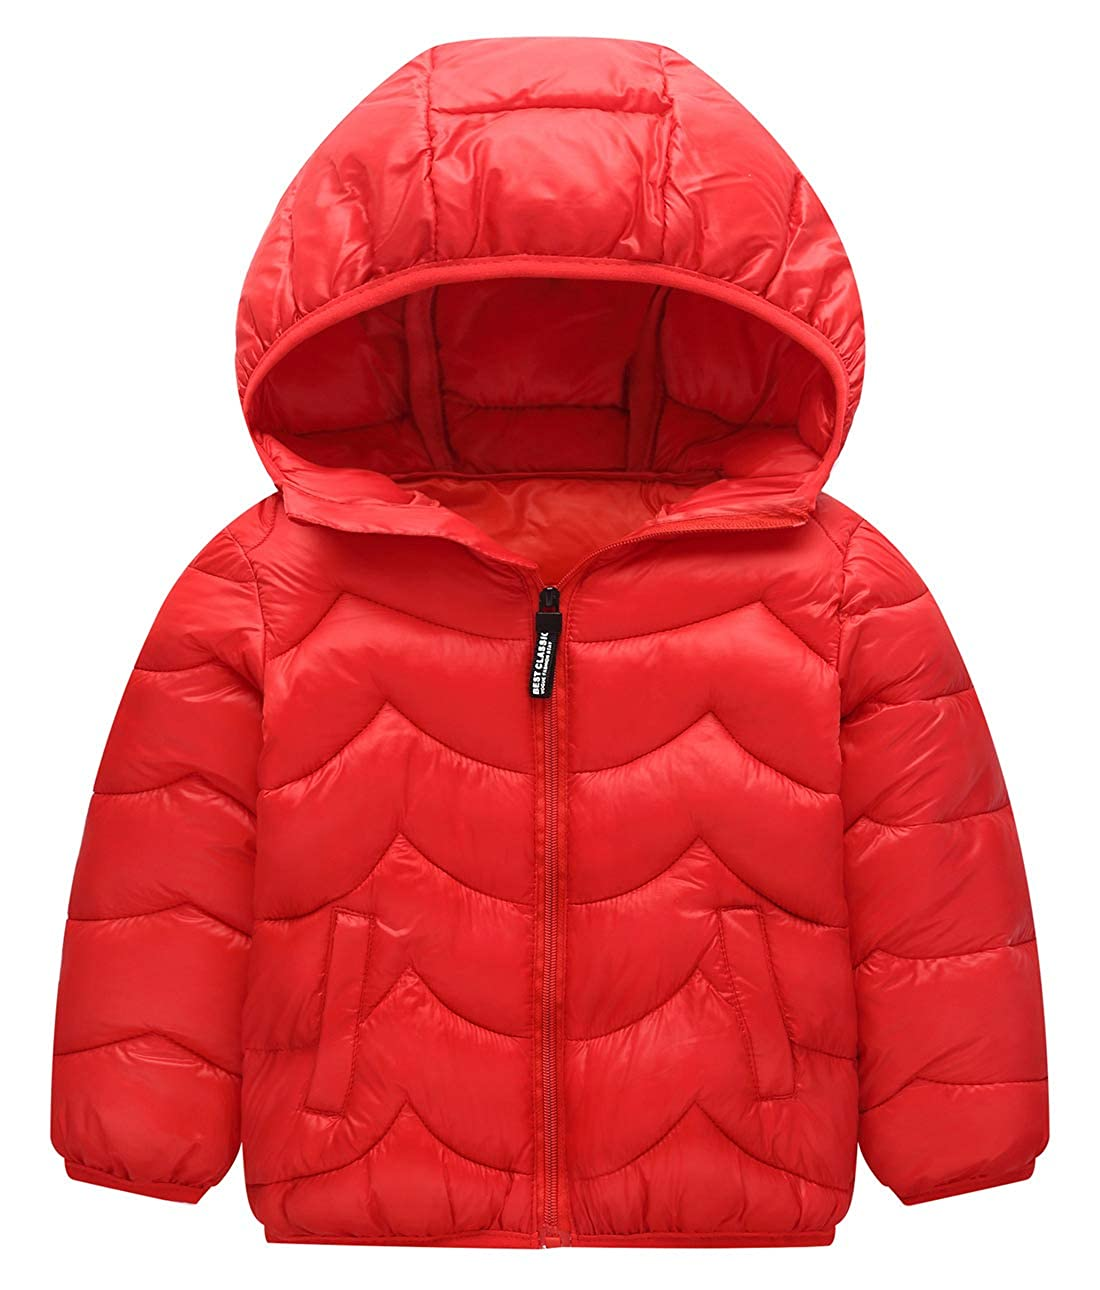 Happy Cherry Baby Boys Girls Hooded Cotton Coat Windproof Thick Jacket Outwear